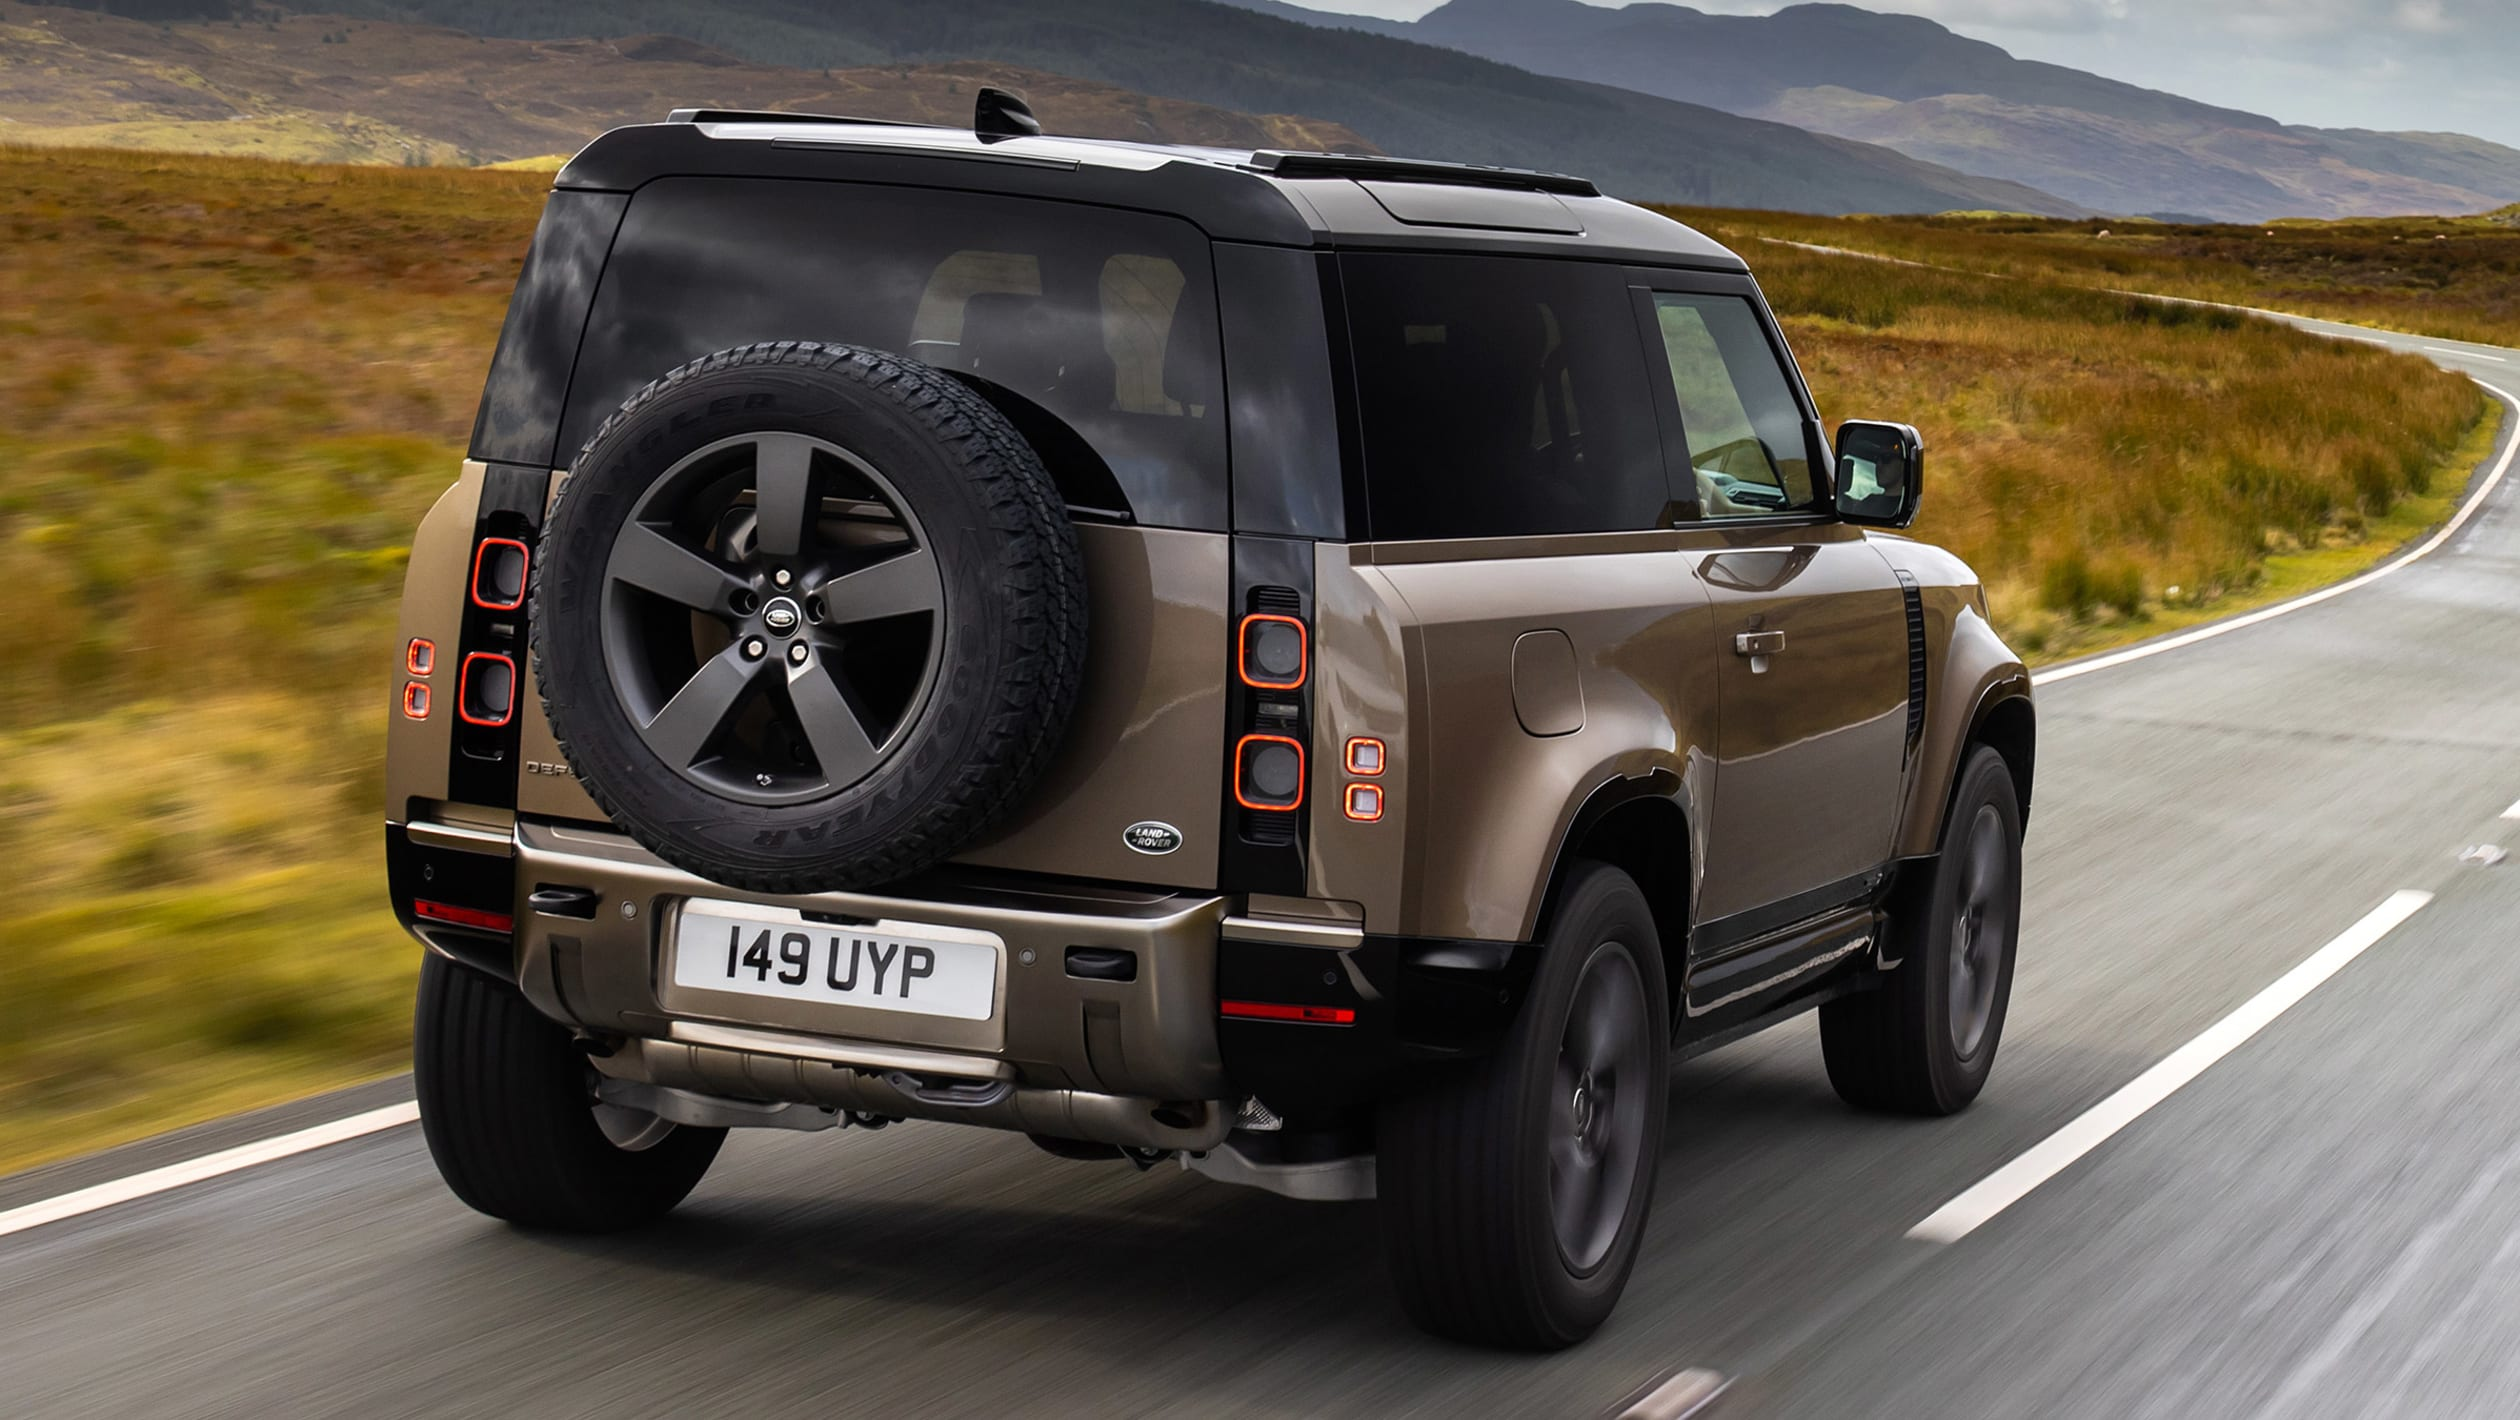 2021 Land Rover Defender 90 P400 review - Automotive Daily